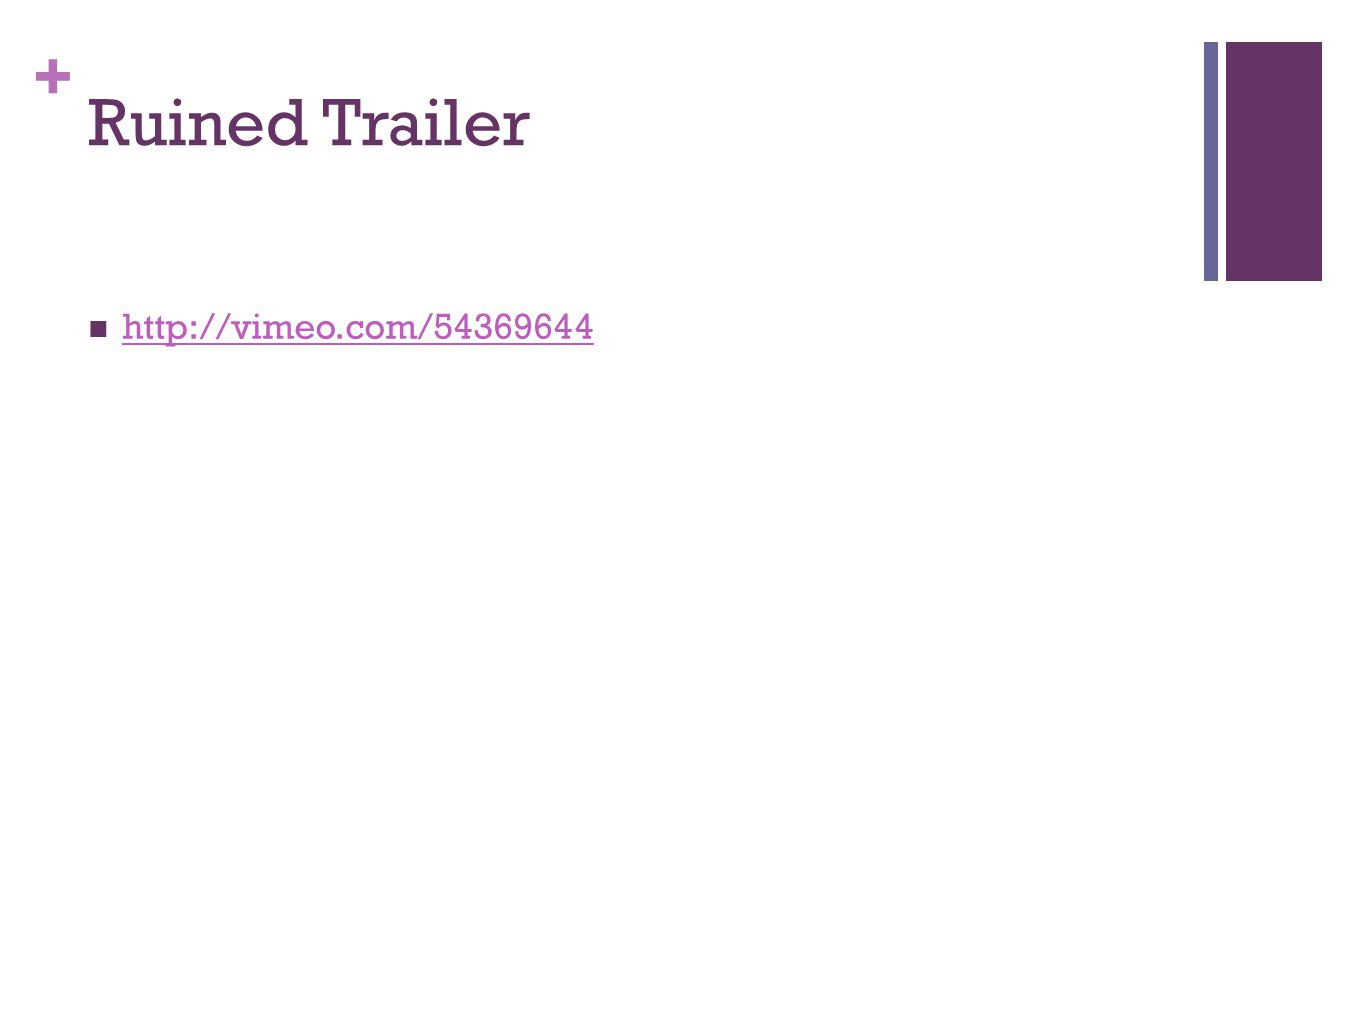 + Ruined Trailer http://vimeo.com/54369644